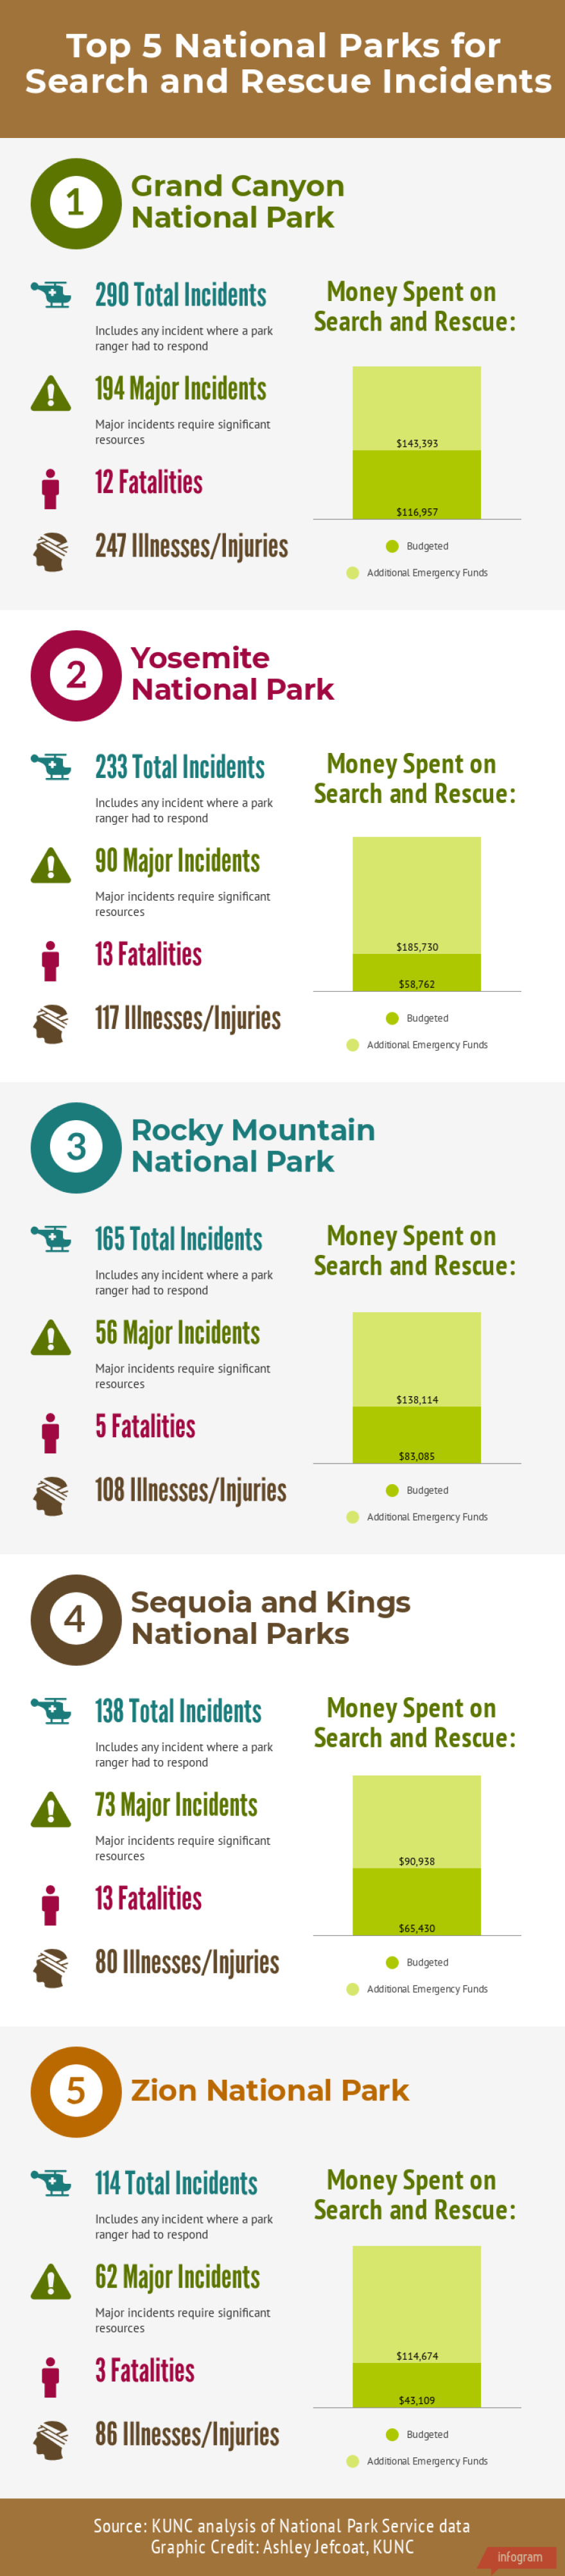 top-5-national-parks-for-search-and-rescue-incidents.png